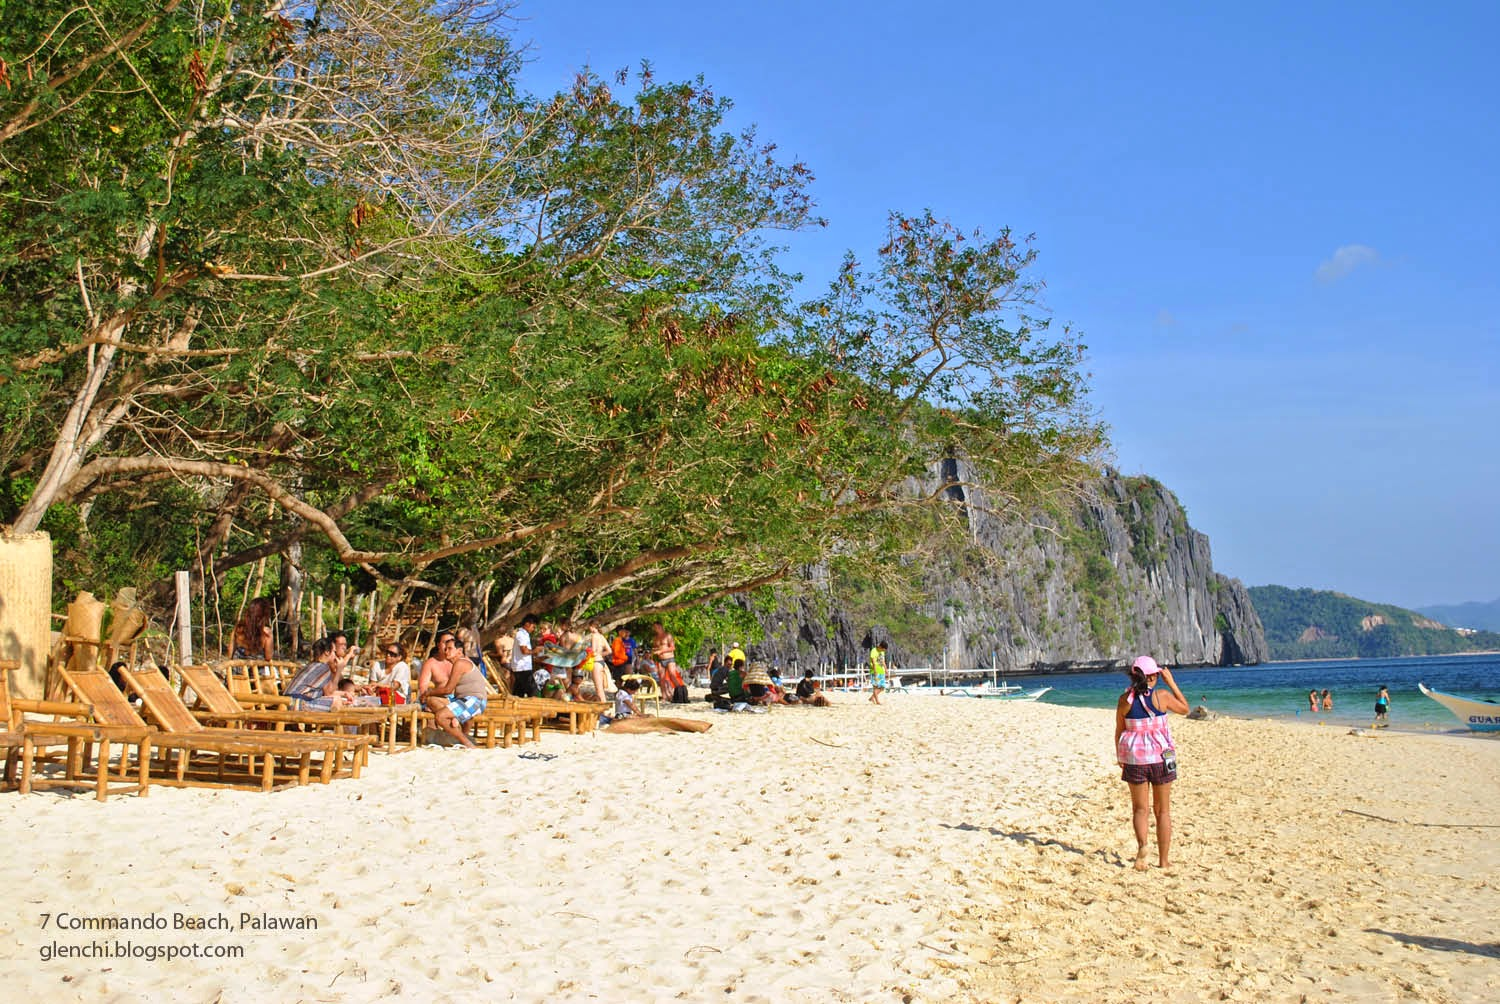 Seven Commando Beach El Nido